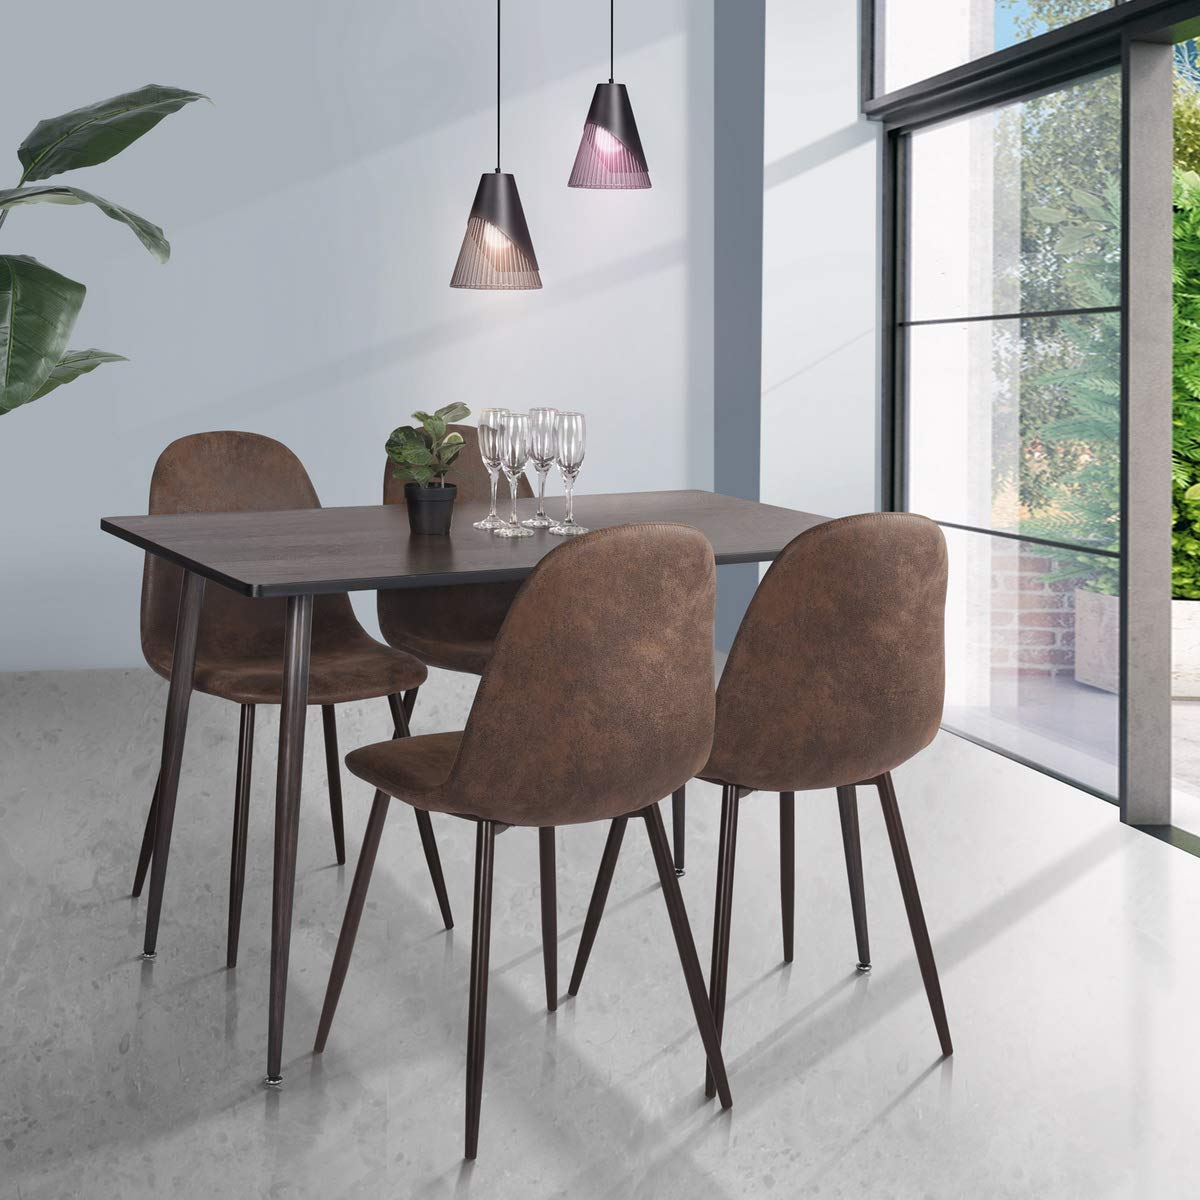 HOMY CASA Farmhouse Rectangle Dining Table, Mid-Century Wooden Top Kitchen Dining Table with Metal Tube for Home, Office, Patio(Only Table not Include Chairs) by HOMY CASA